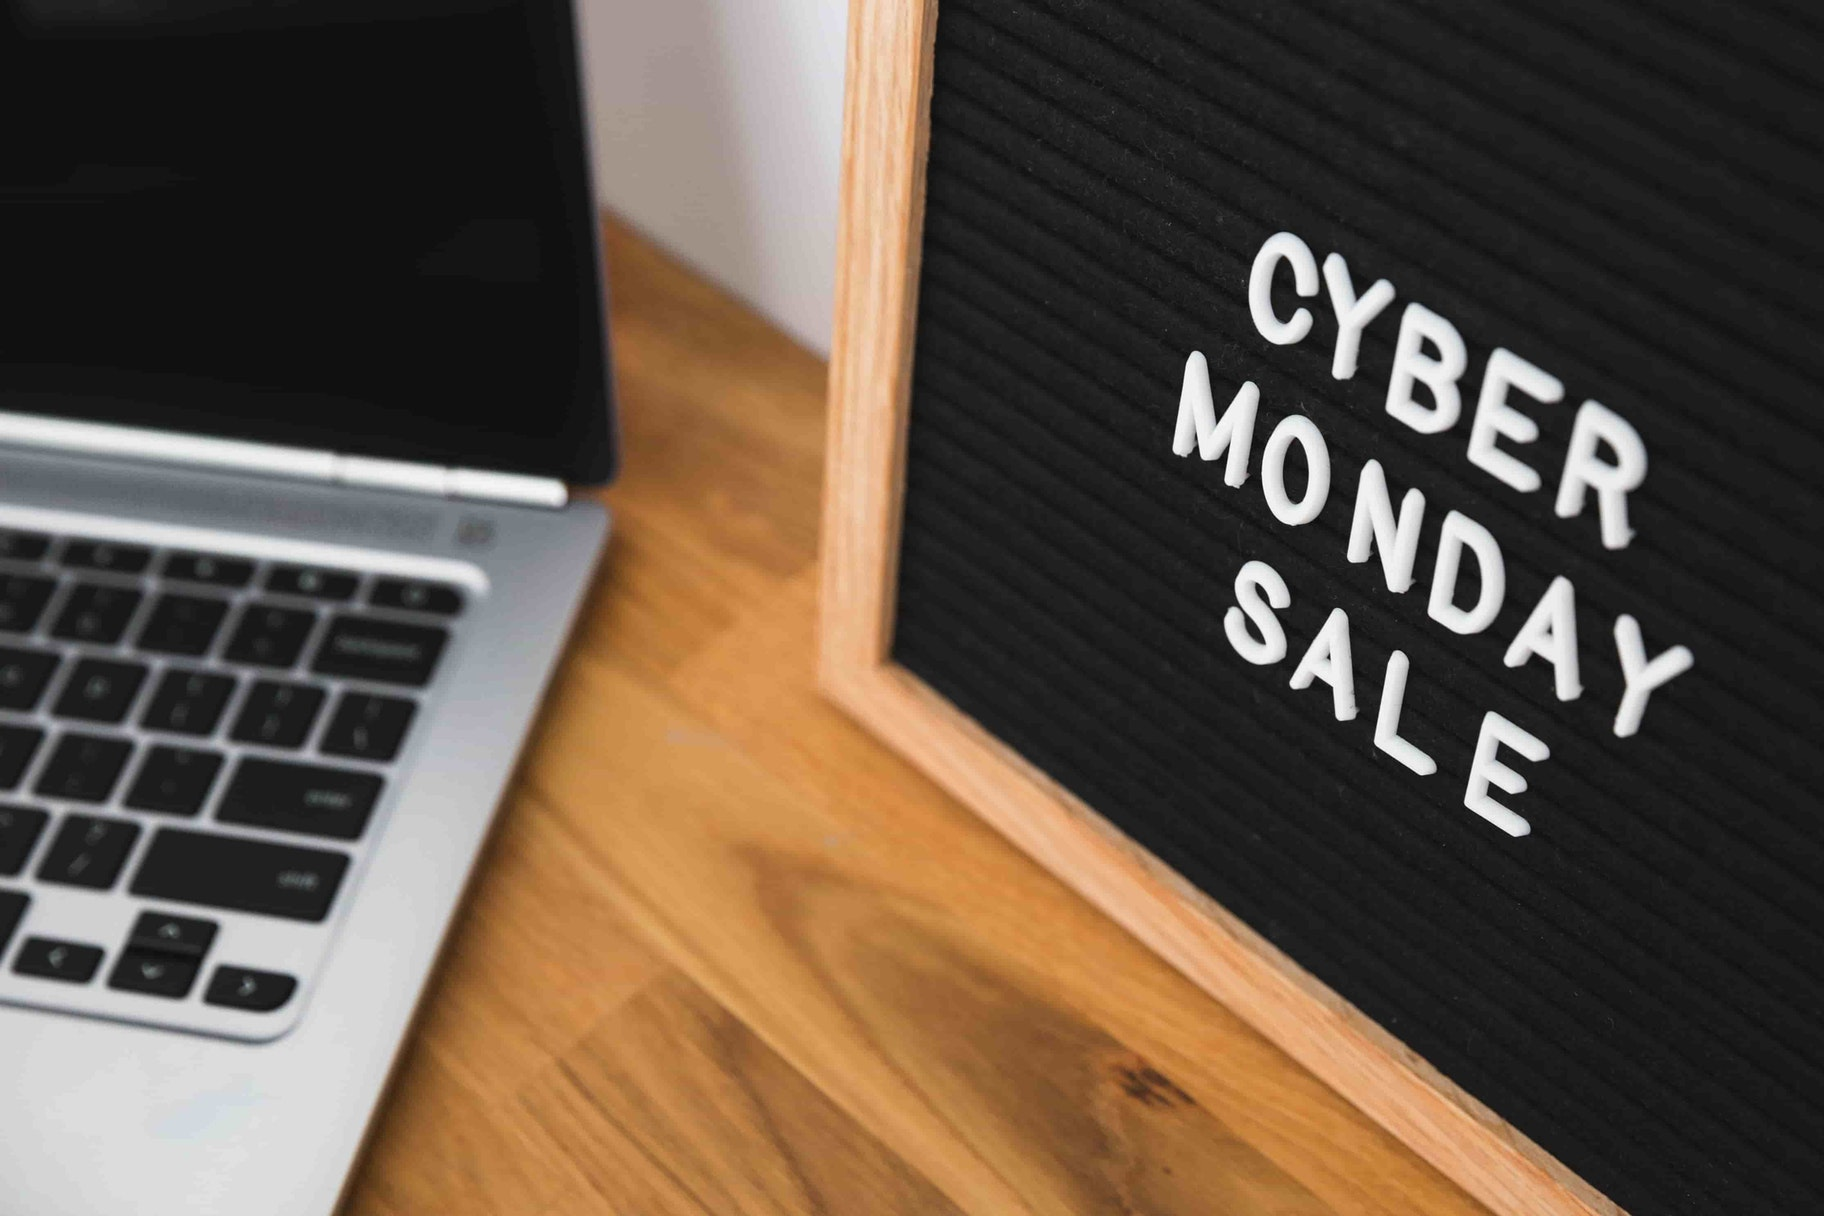 A letterboard with 'cyber monday sale' sits next to an open laptop